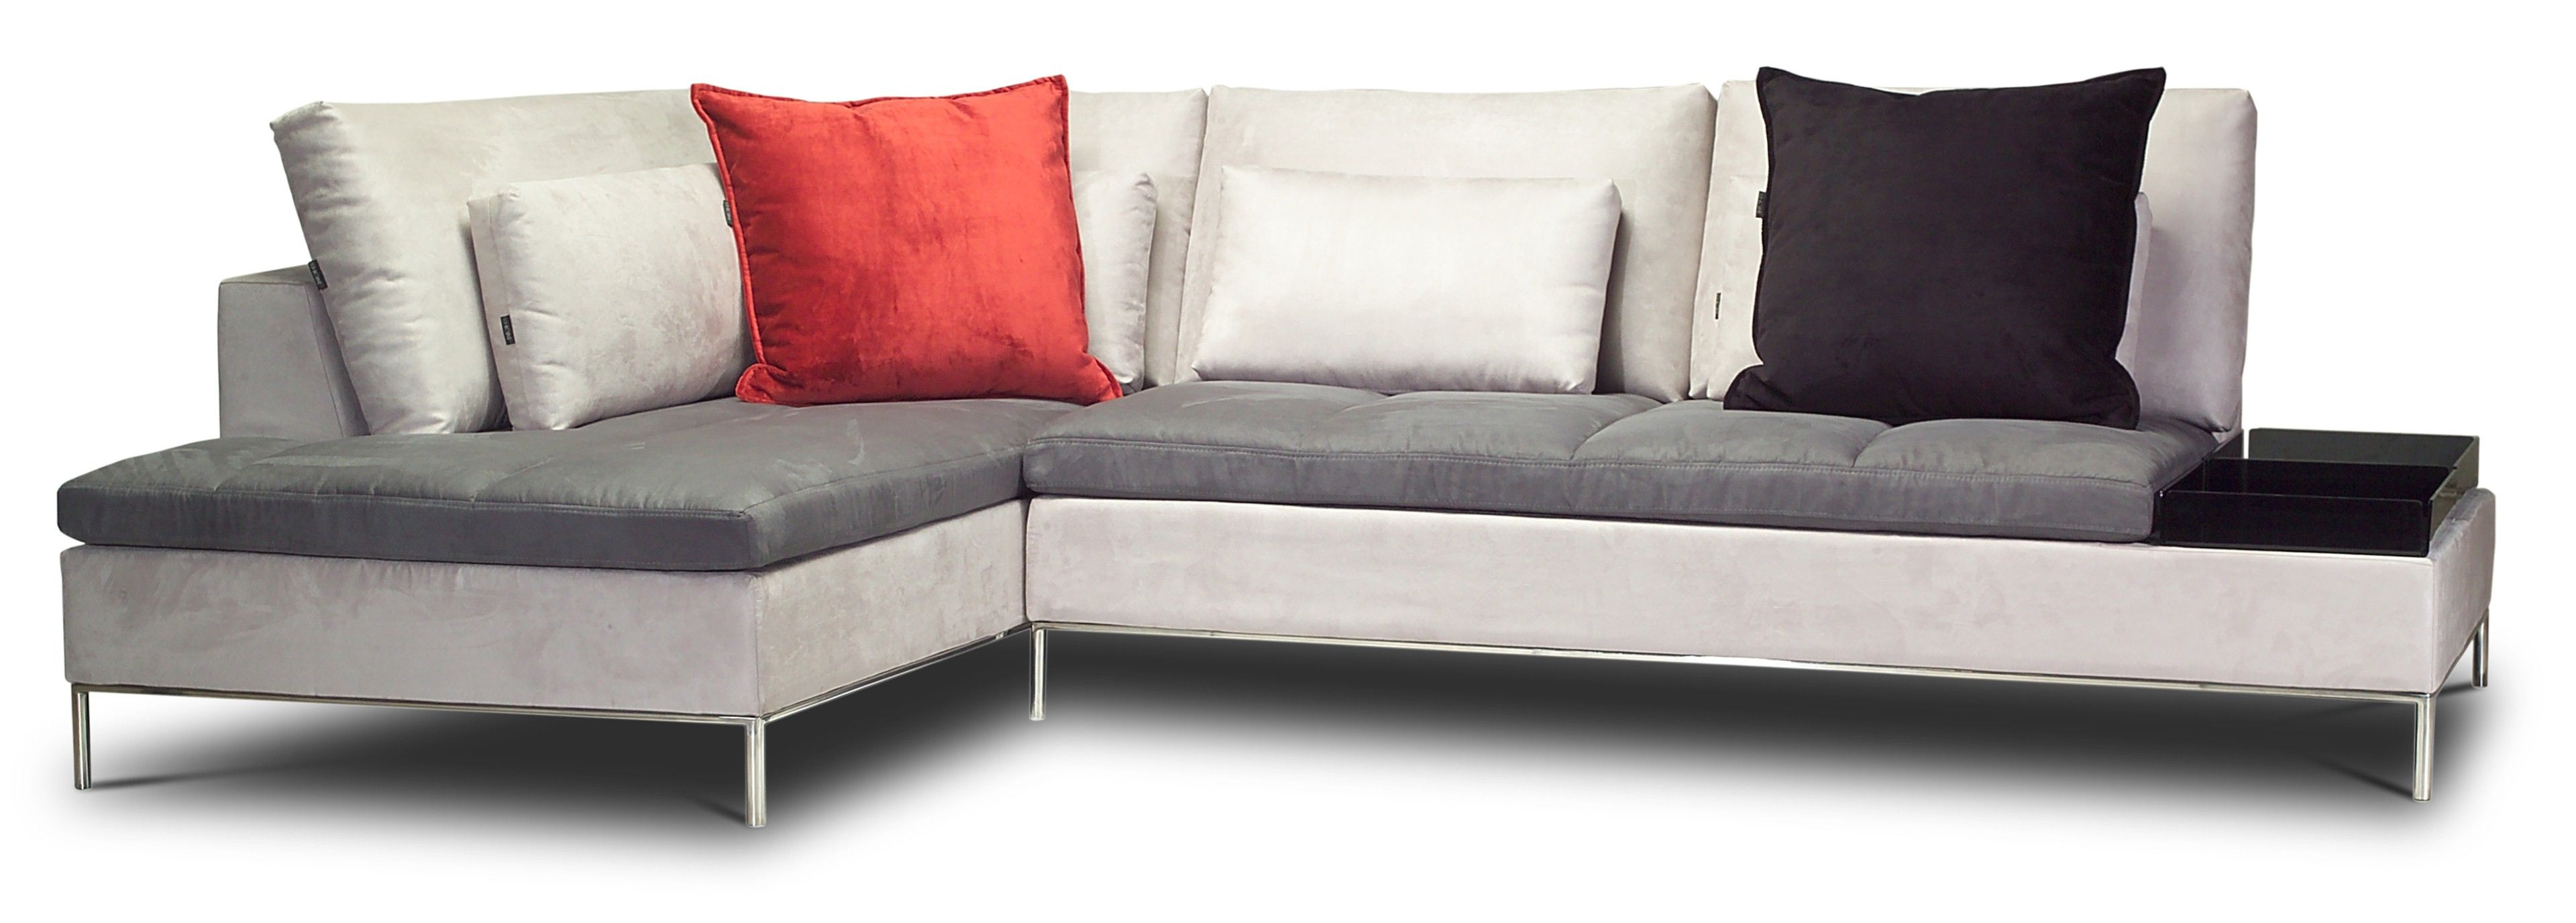 cute rustic sectional sofas picture-Amazing Rustic Sectional sofas Picture